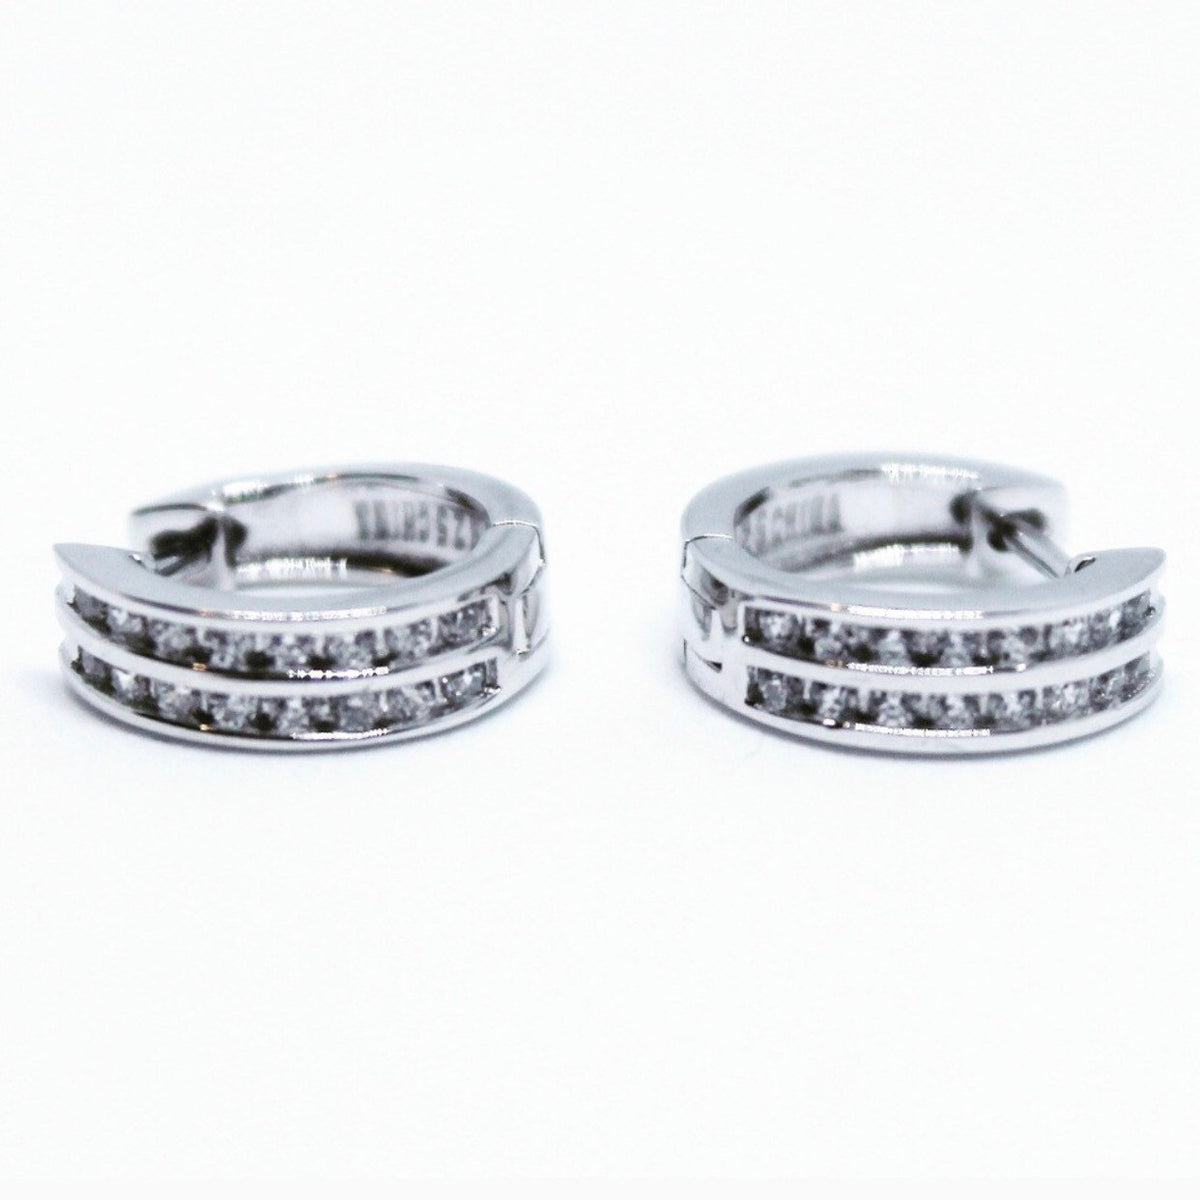 Tiny 14K White Gold on Sterling Silver Hoops Earrings